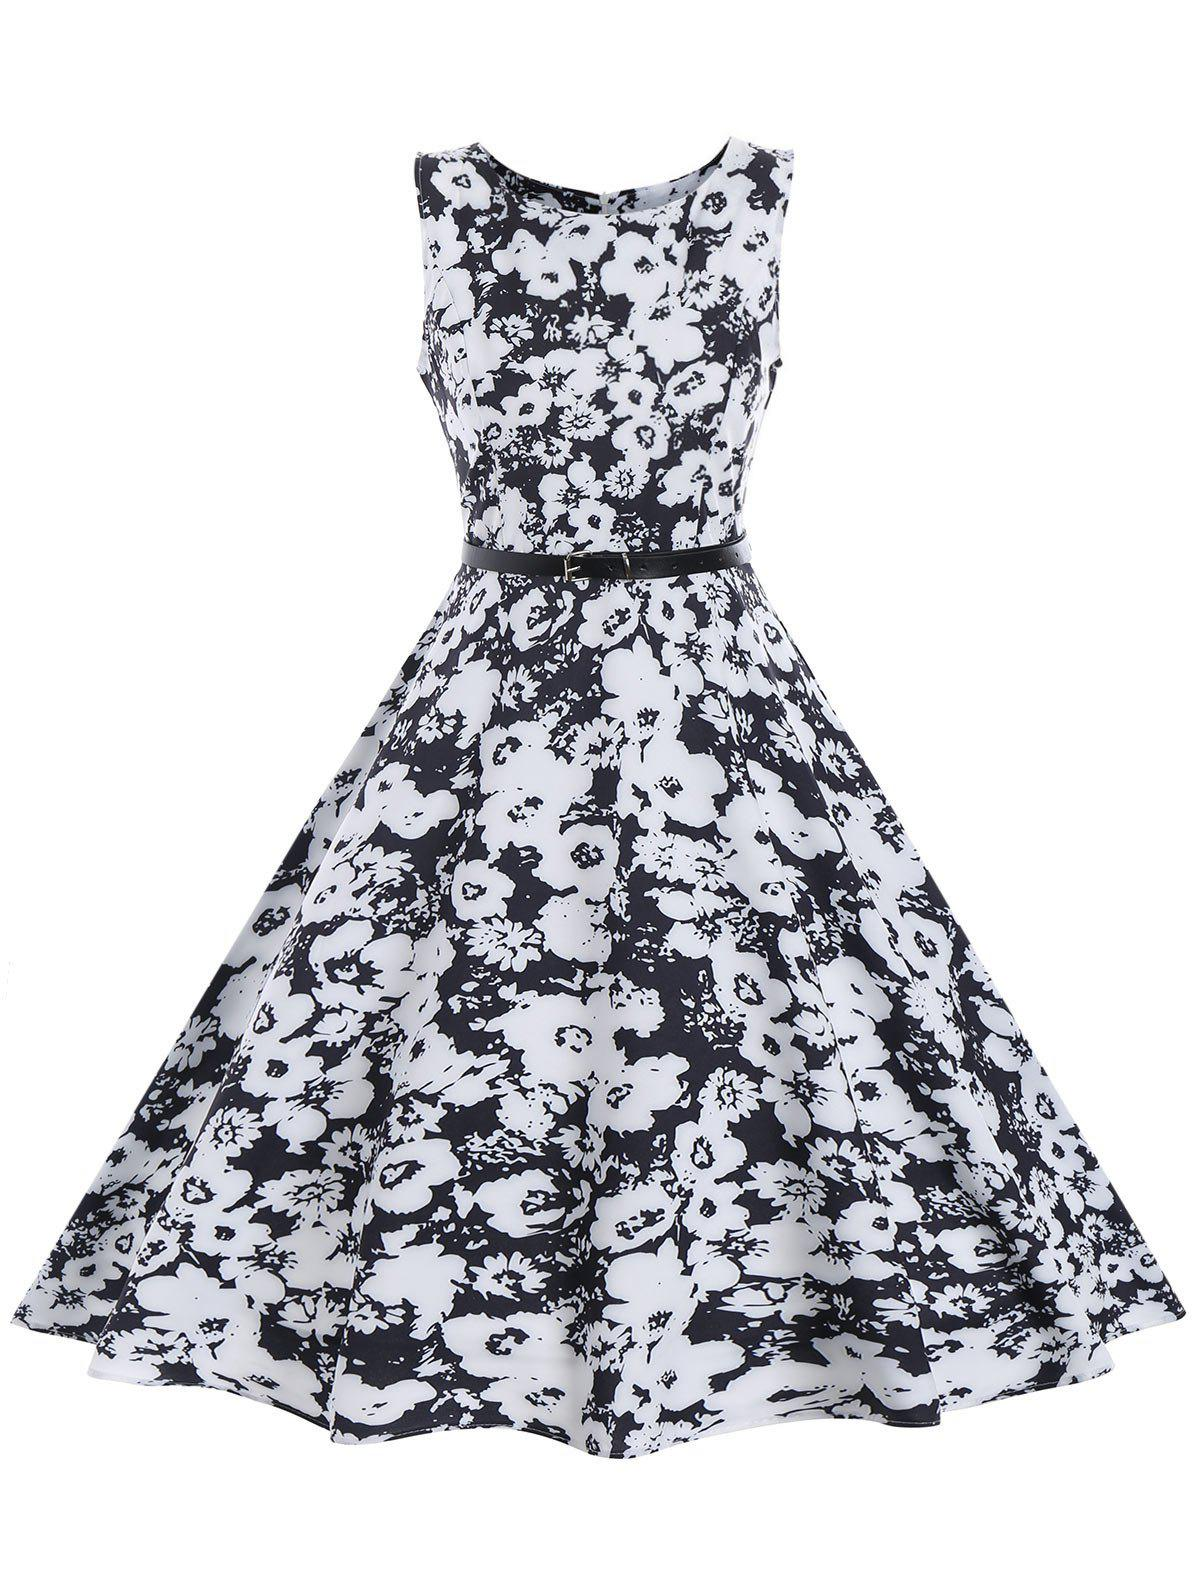 Chic Vintage Floral Sleeveless A Line Dress